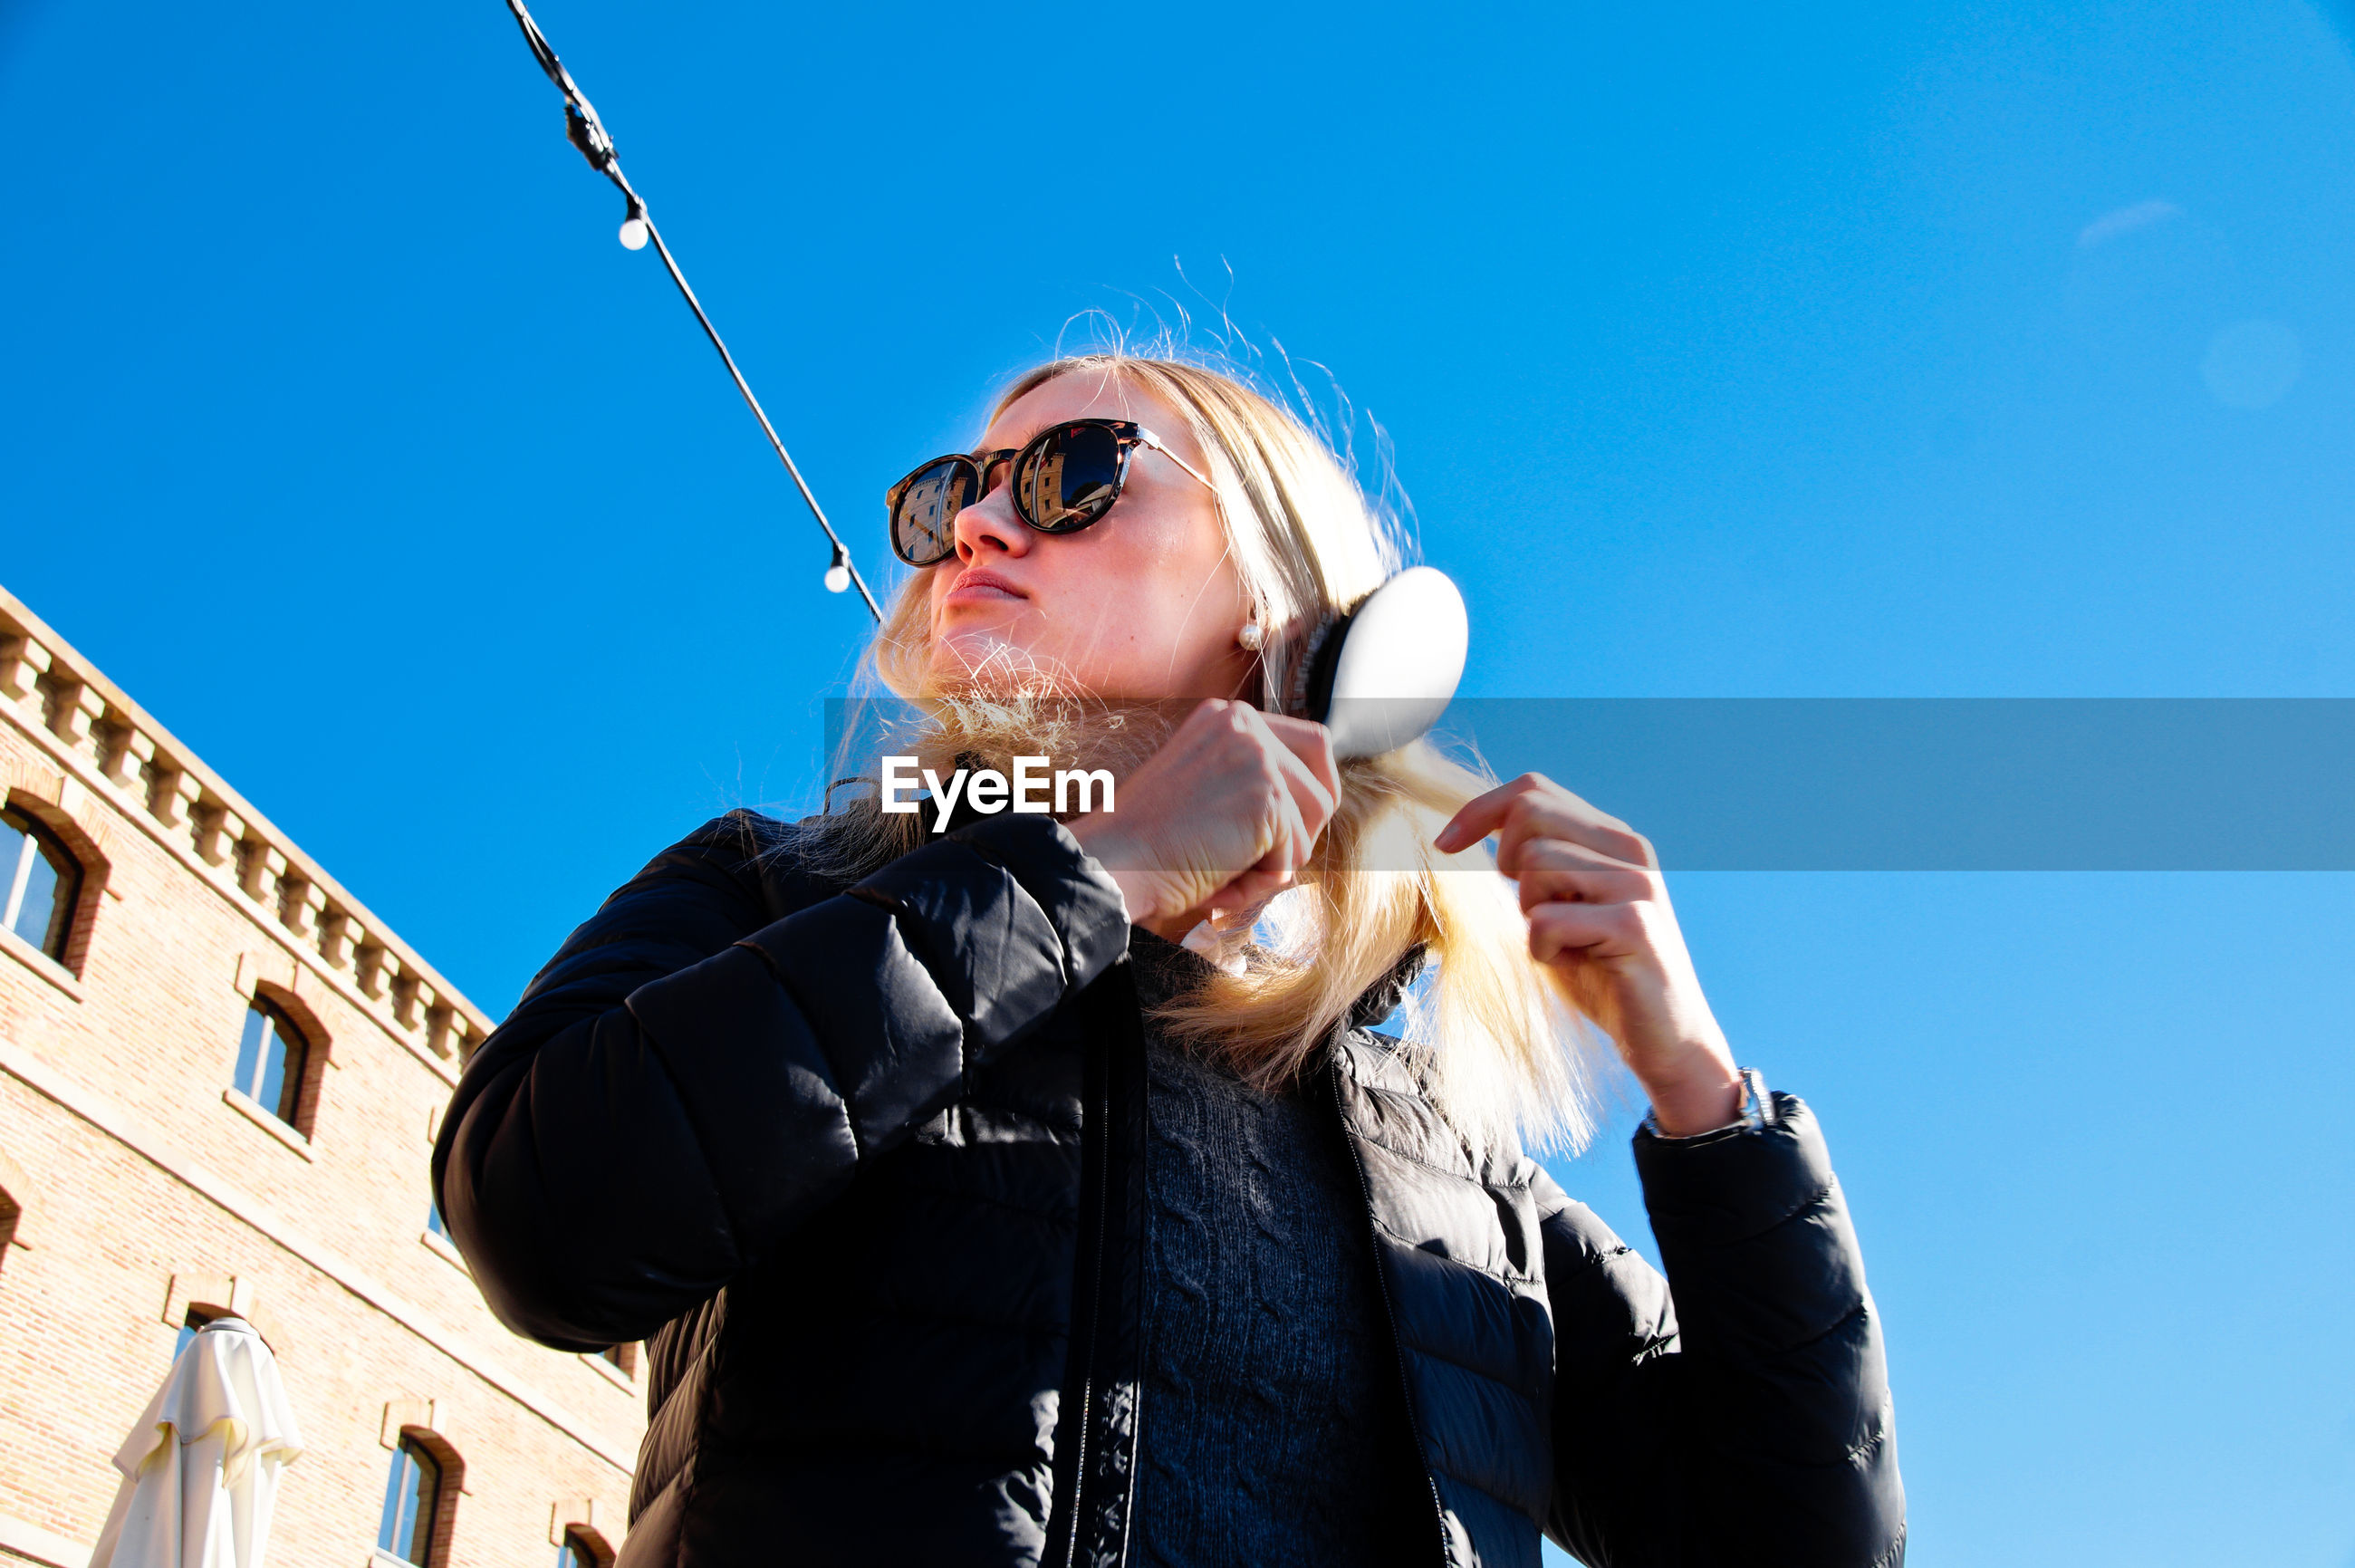 Low angle view of woman combing hair against clear sky